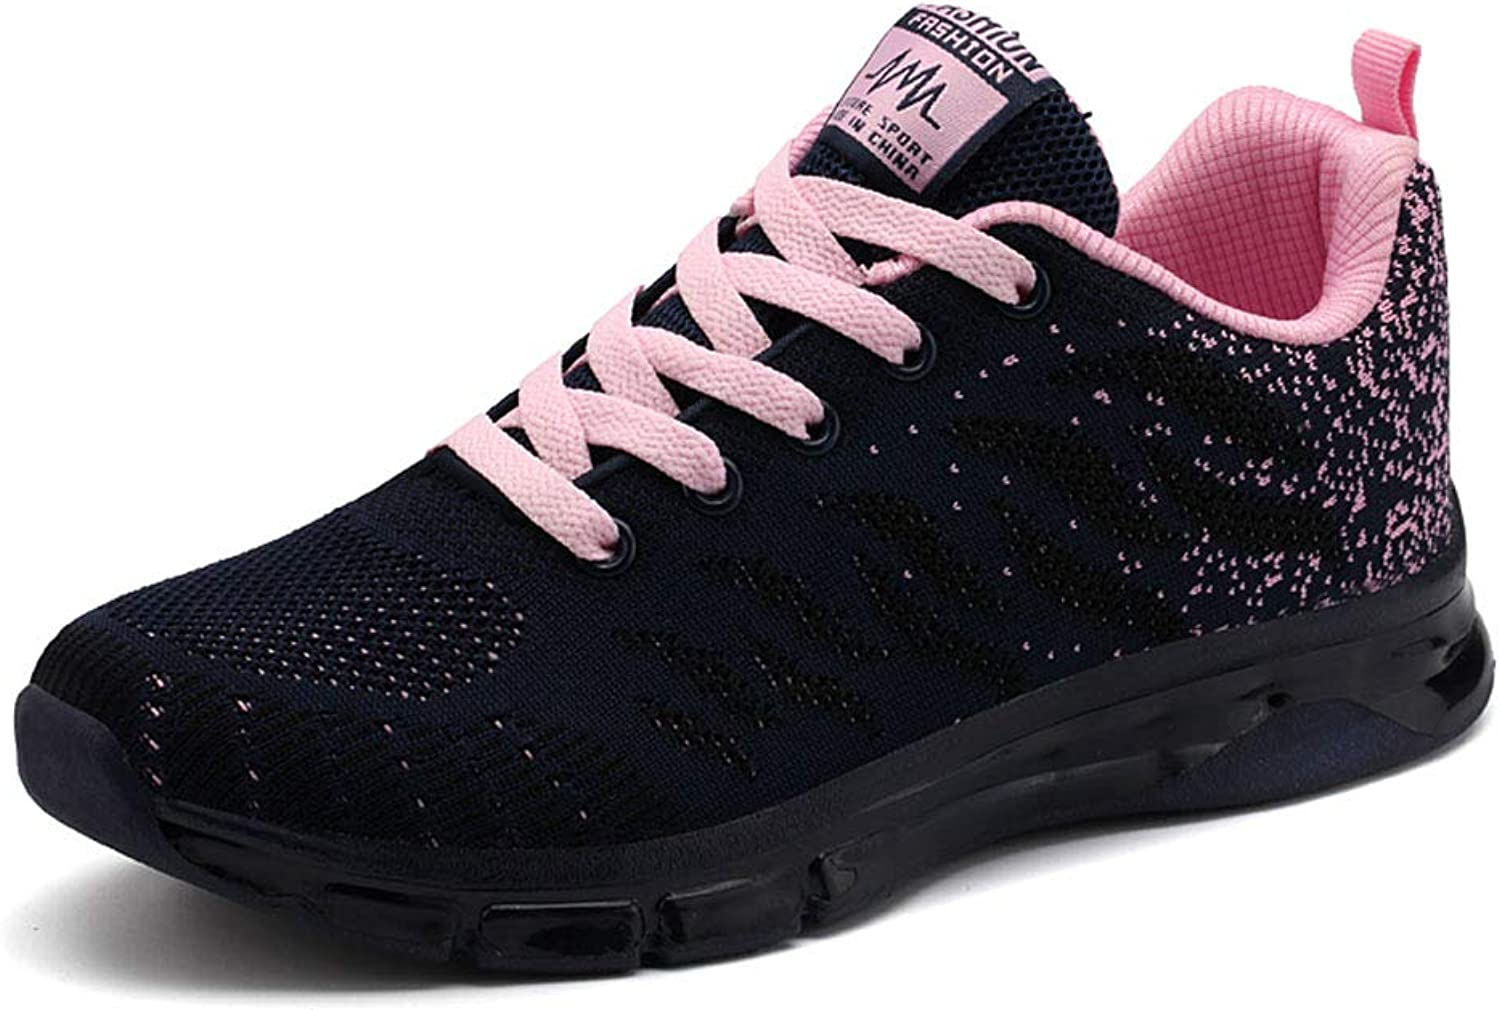 FLARUT Womens Athletic Running Sneakers Fashion Workout Sport shoes Gym Fitness Casual Walking